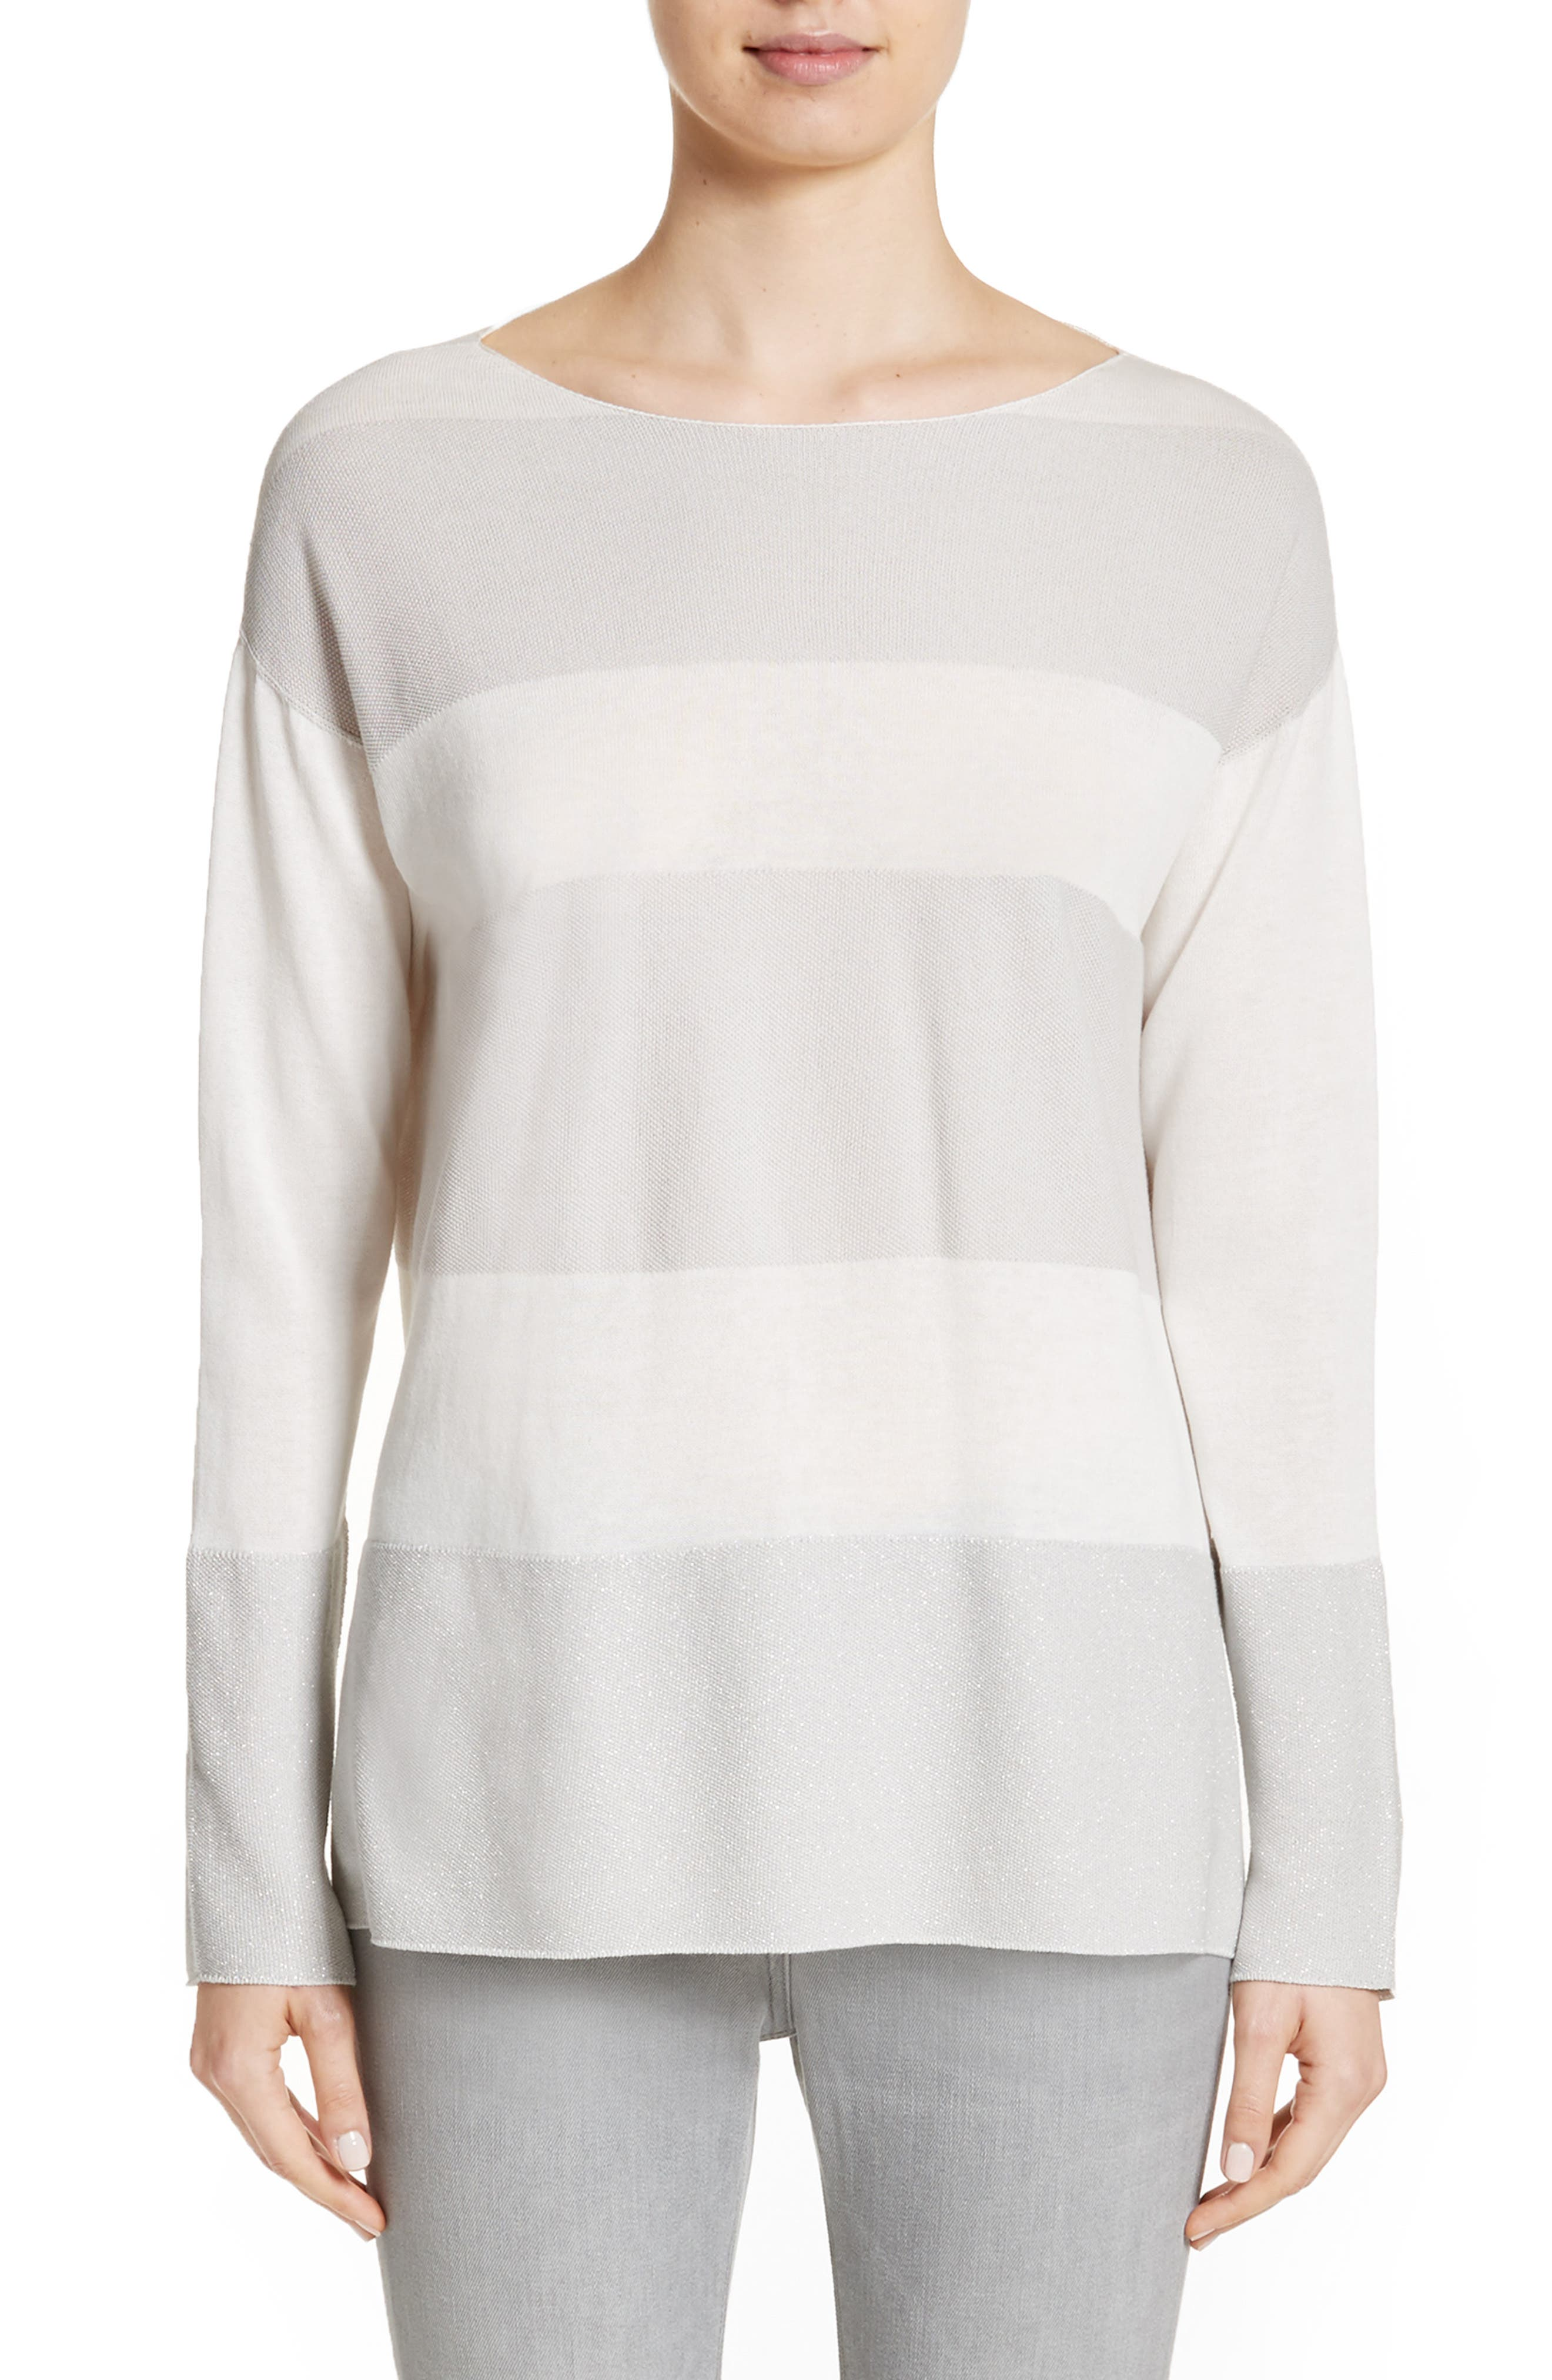 Popcorn Stripe Metallic Knit Sweater,                         Main,                         color, Ivory/ Grey